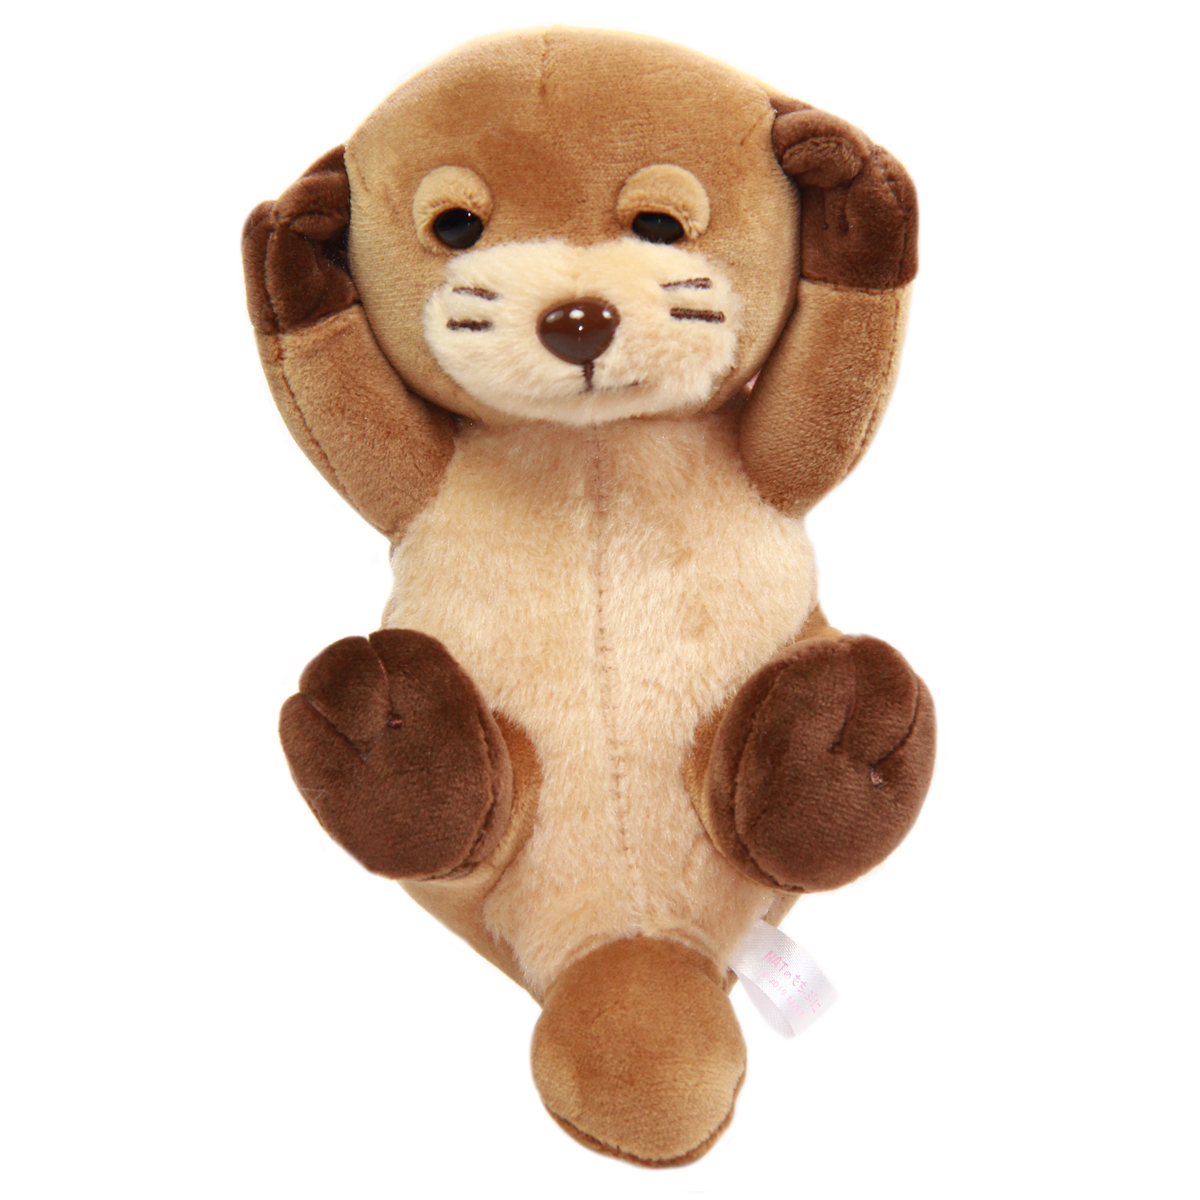 Mochi Puni Kawauso Collection Soft Sleepy Otter Plush Toy Brown 7 Inches